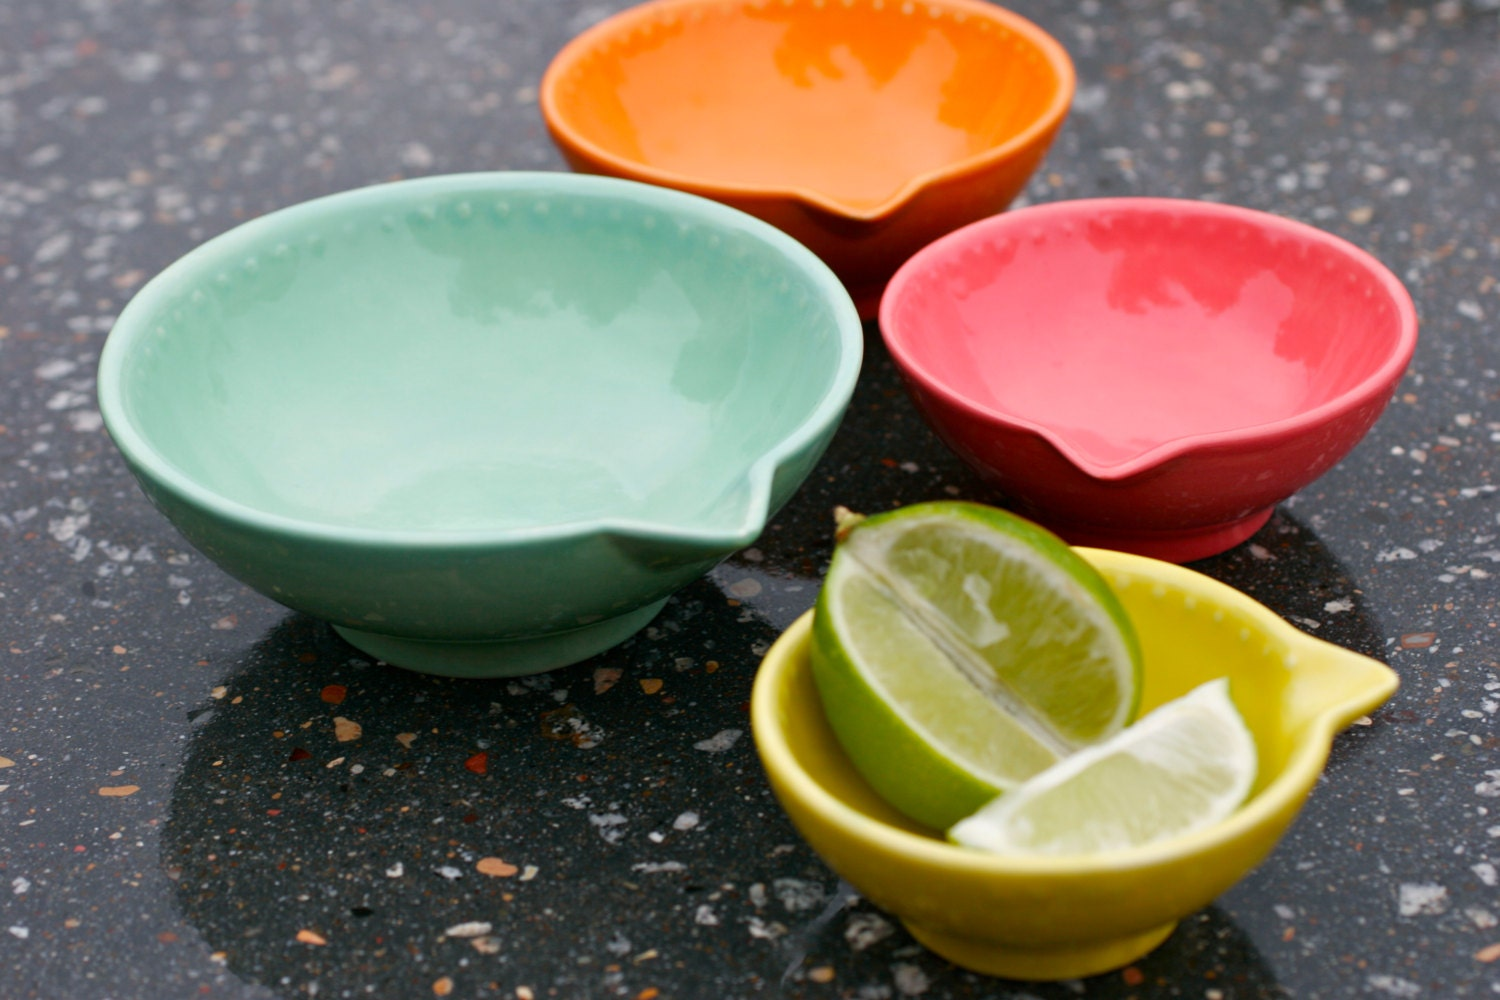 Neon Citrus Measuring Cup Set of Four - Kitchen Gift Nesting - Mint Green, Orange, Pink, and Yellow - Hand Painted Prep Bowls- Made To Order - GrayDecember